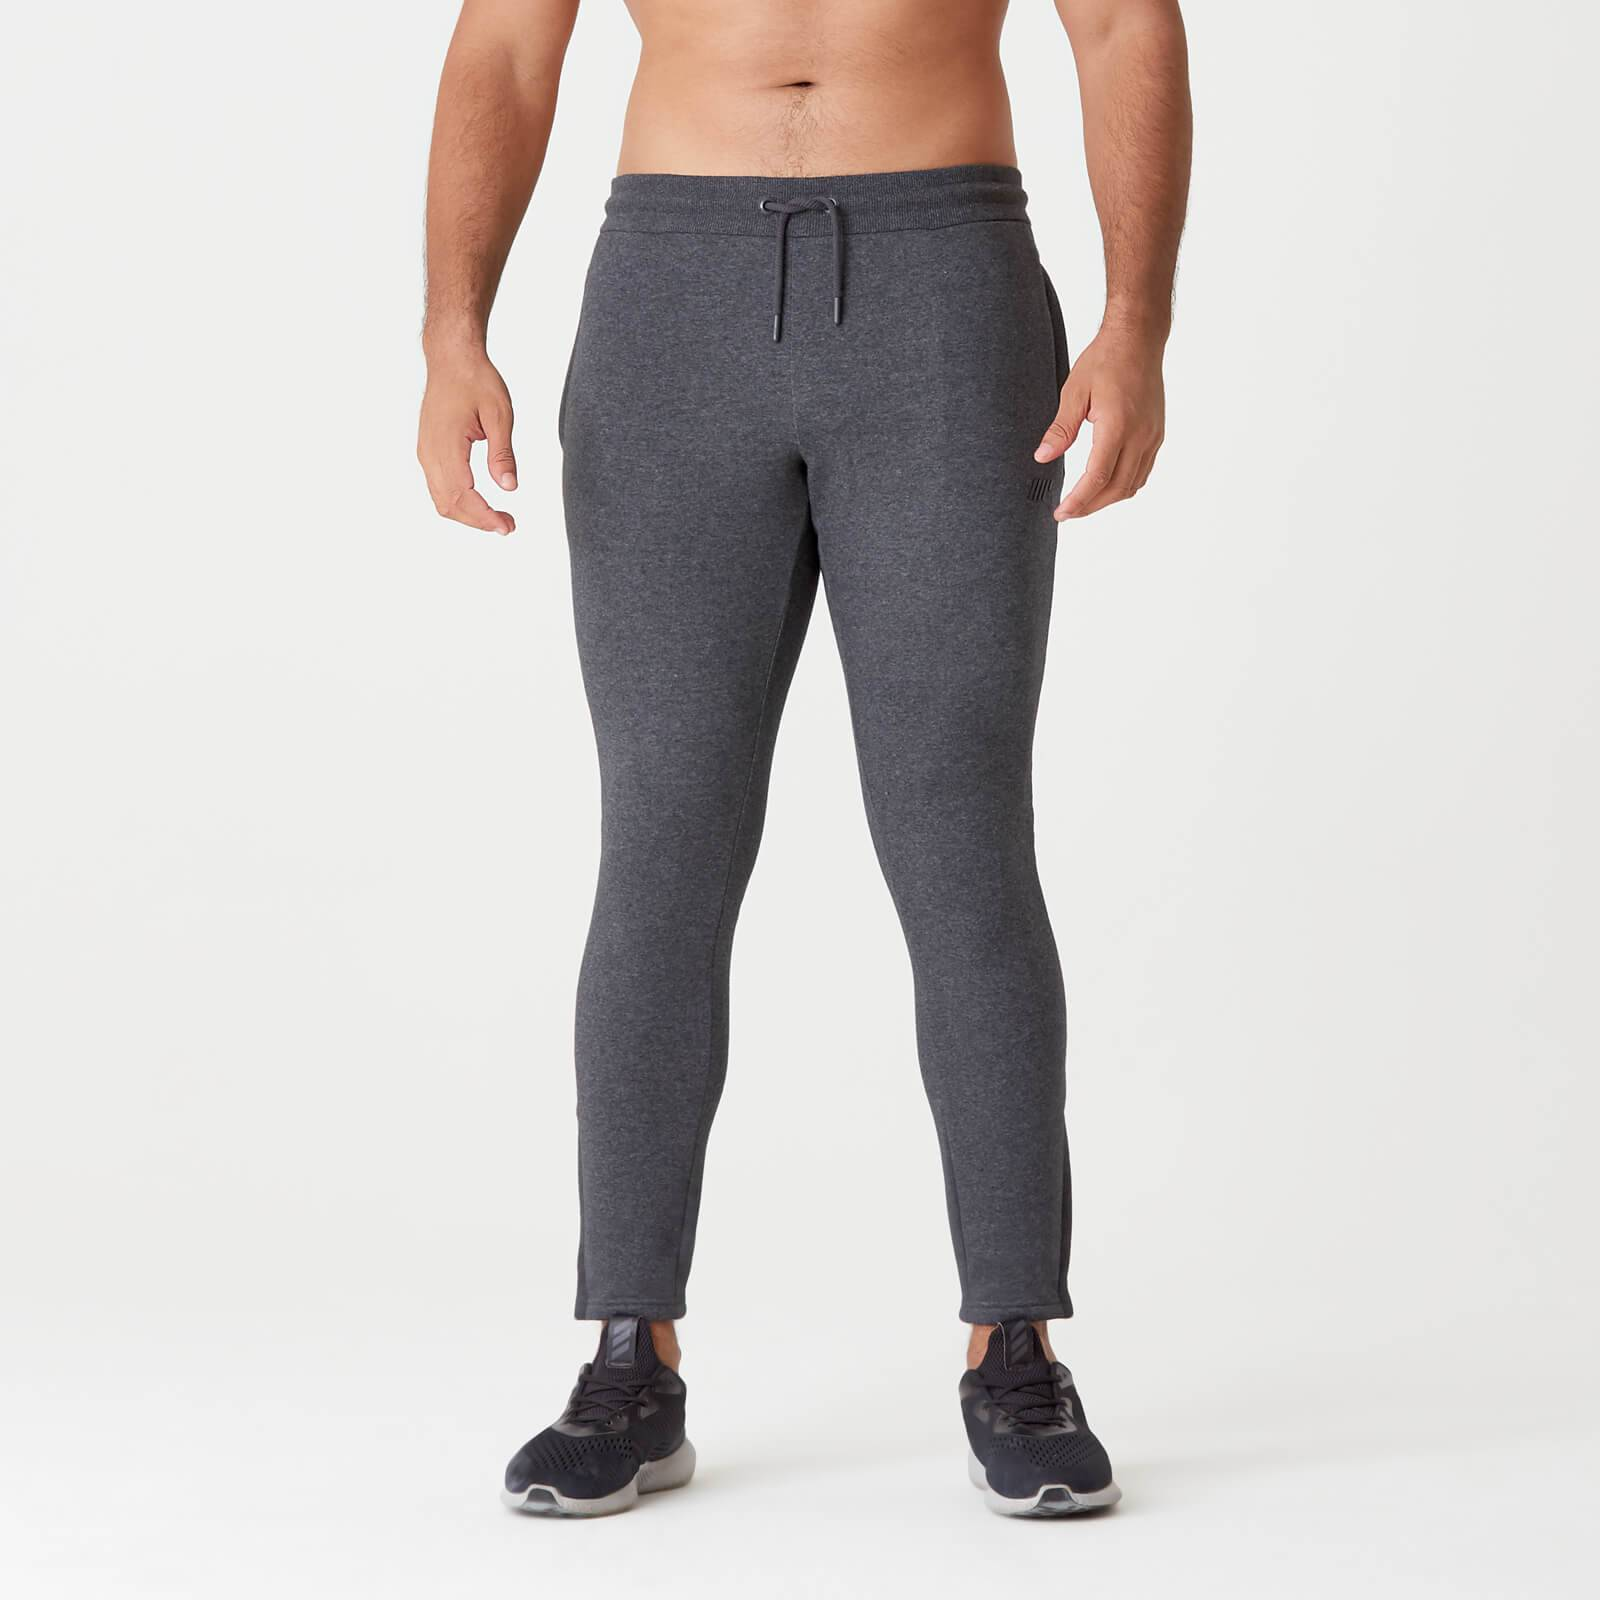 Myprotein Tru-Fit Joggers 2.0 - Charcoal Marl - S